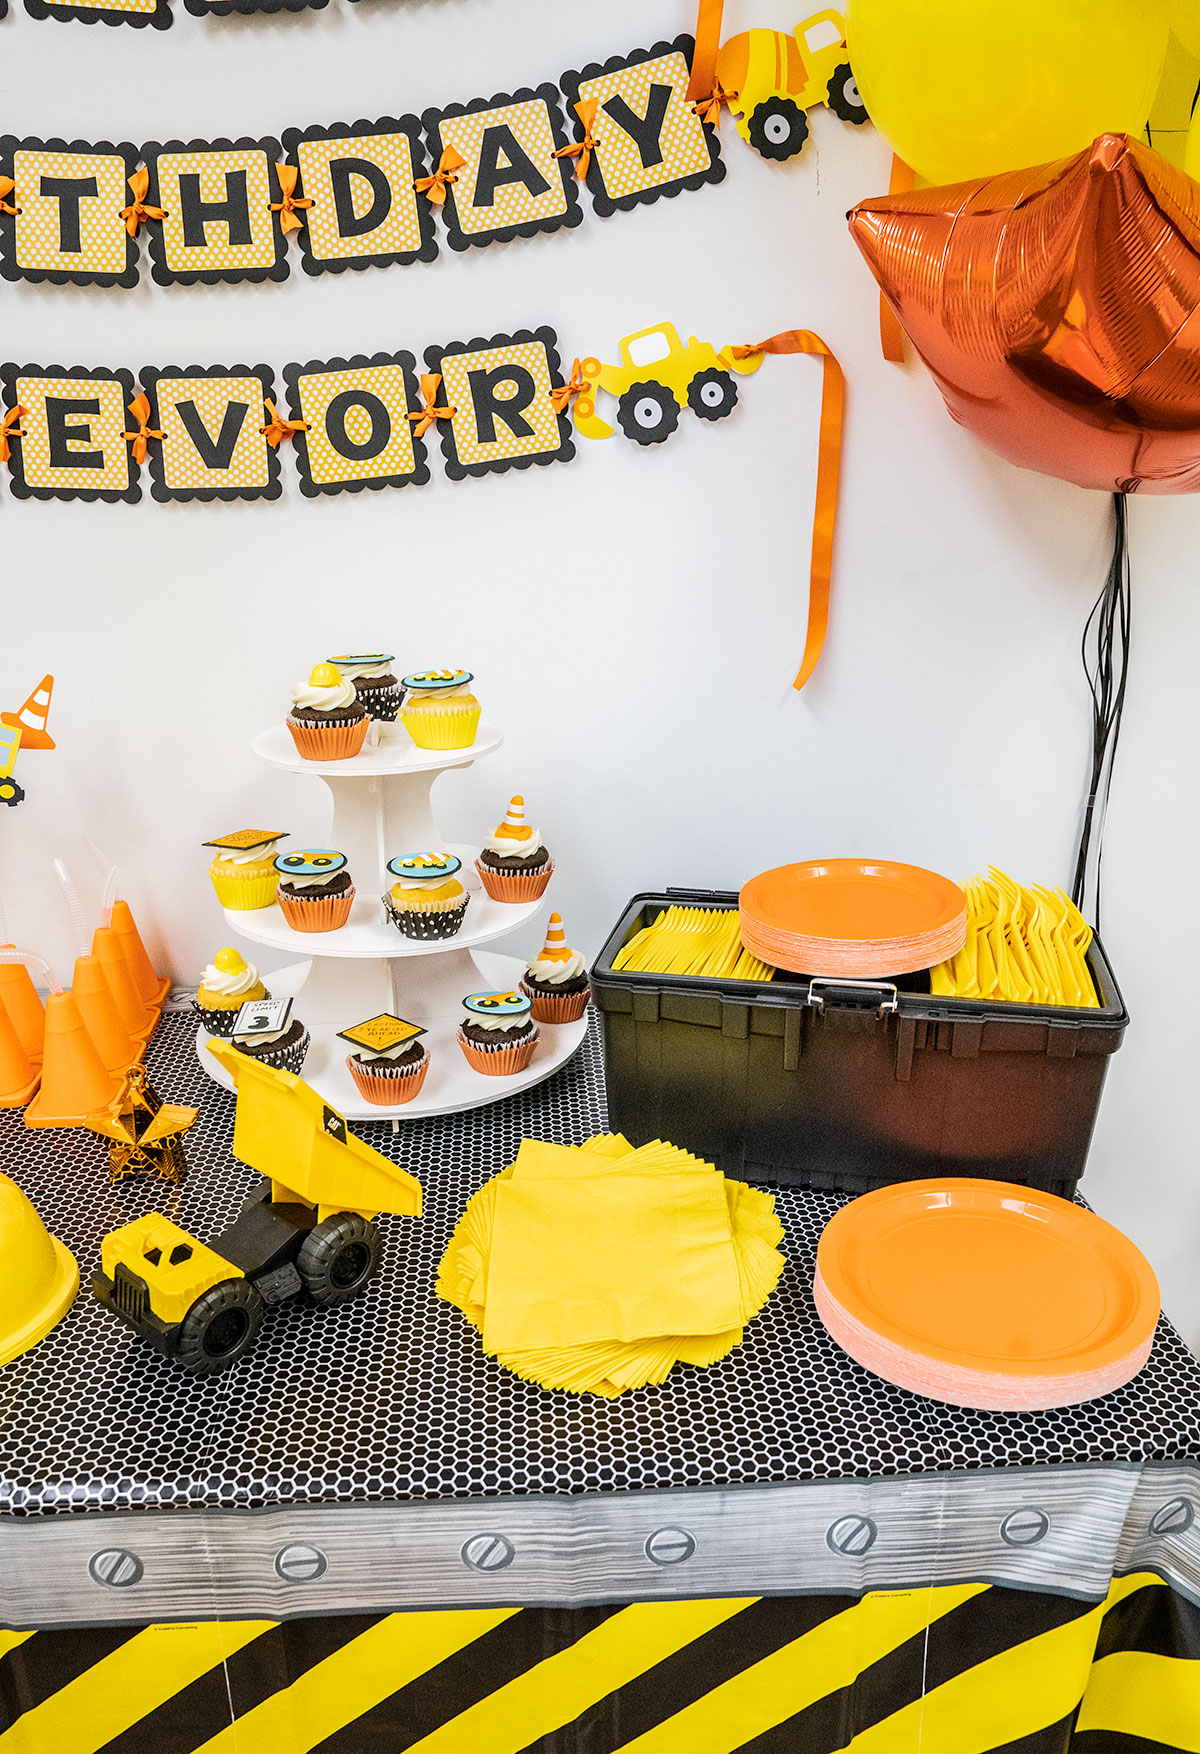 Decorating-for-Construction-Birthday-Party